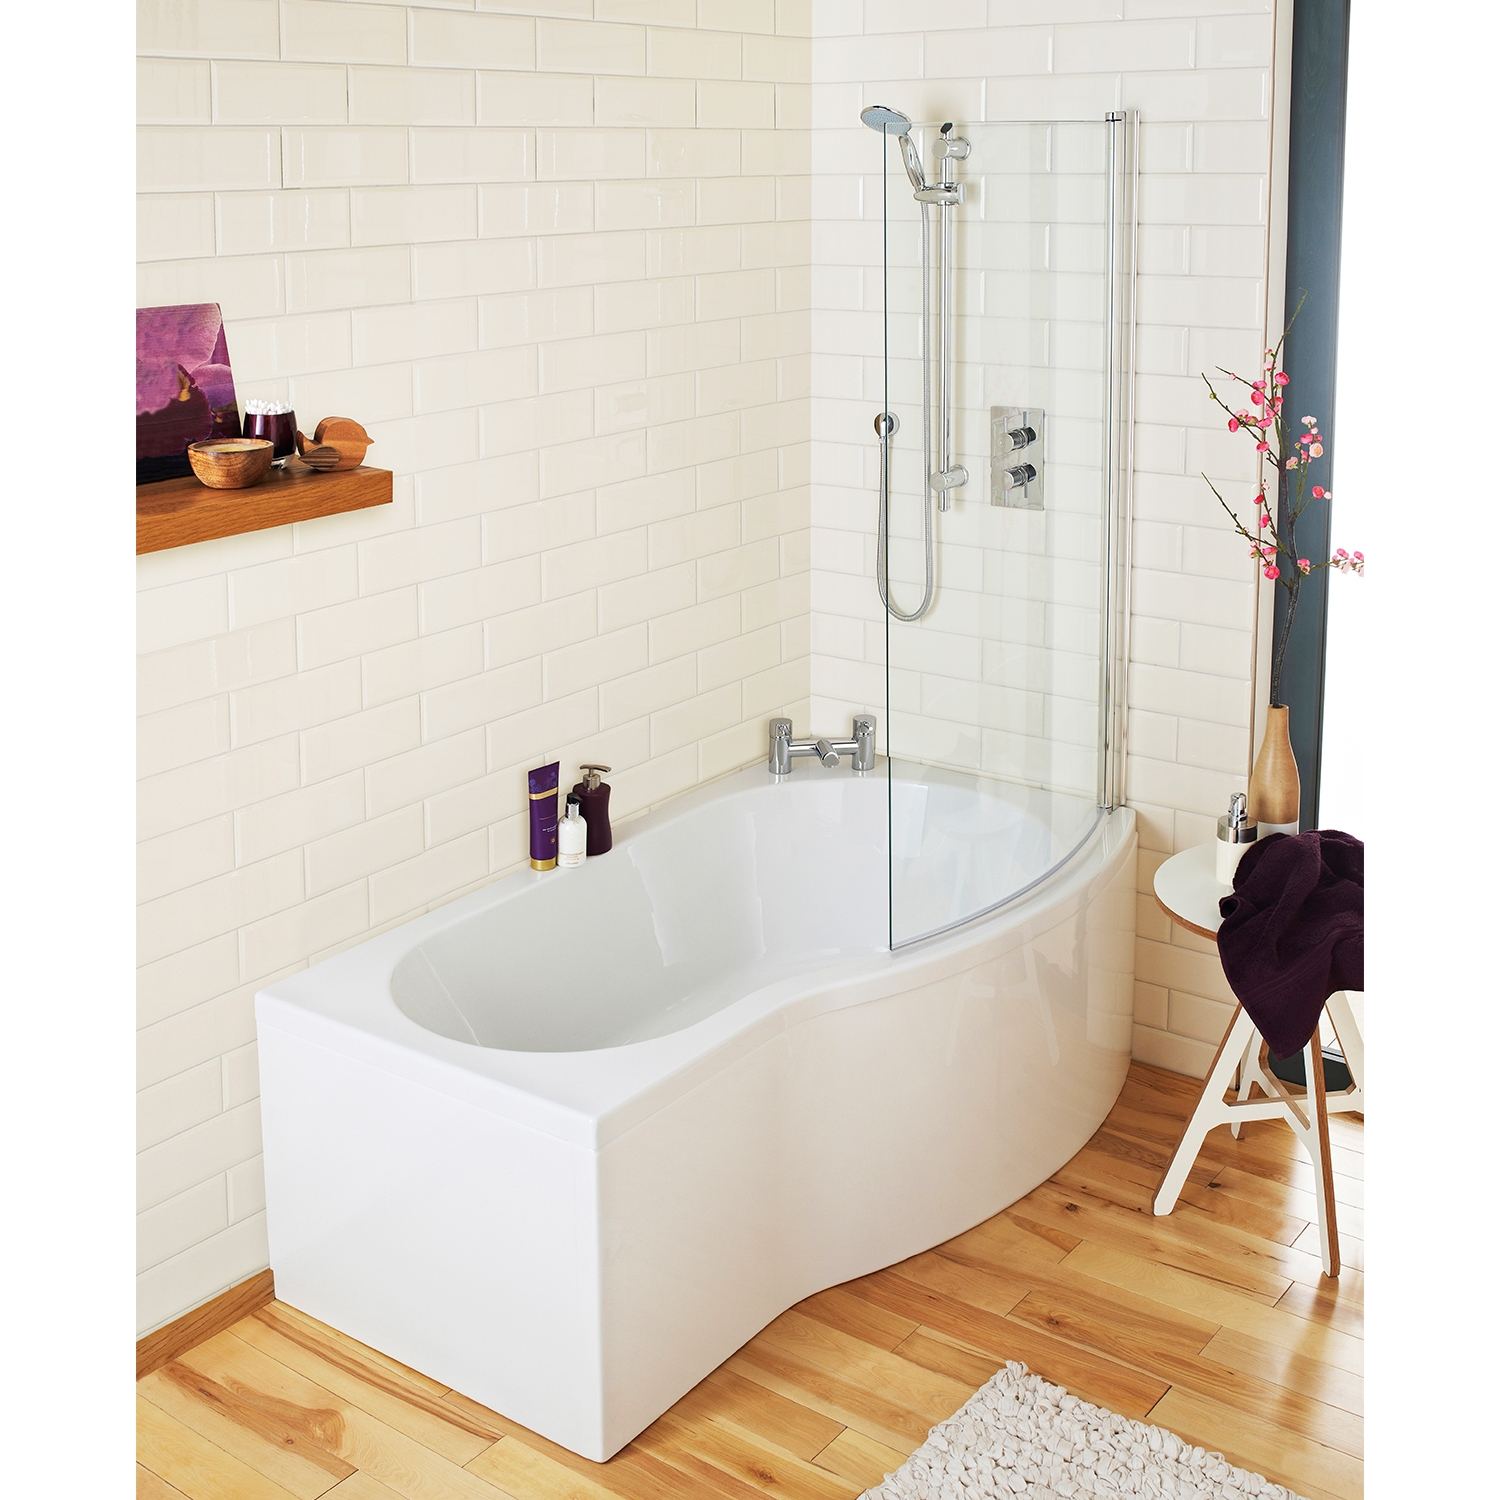 Premier B-Shaped Curved Shower Bath 1500mm x 735mm/800mm Right Handed